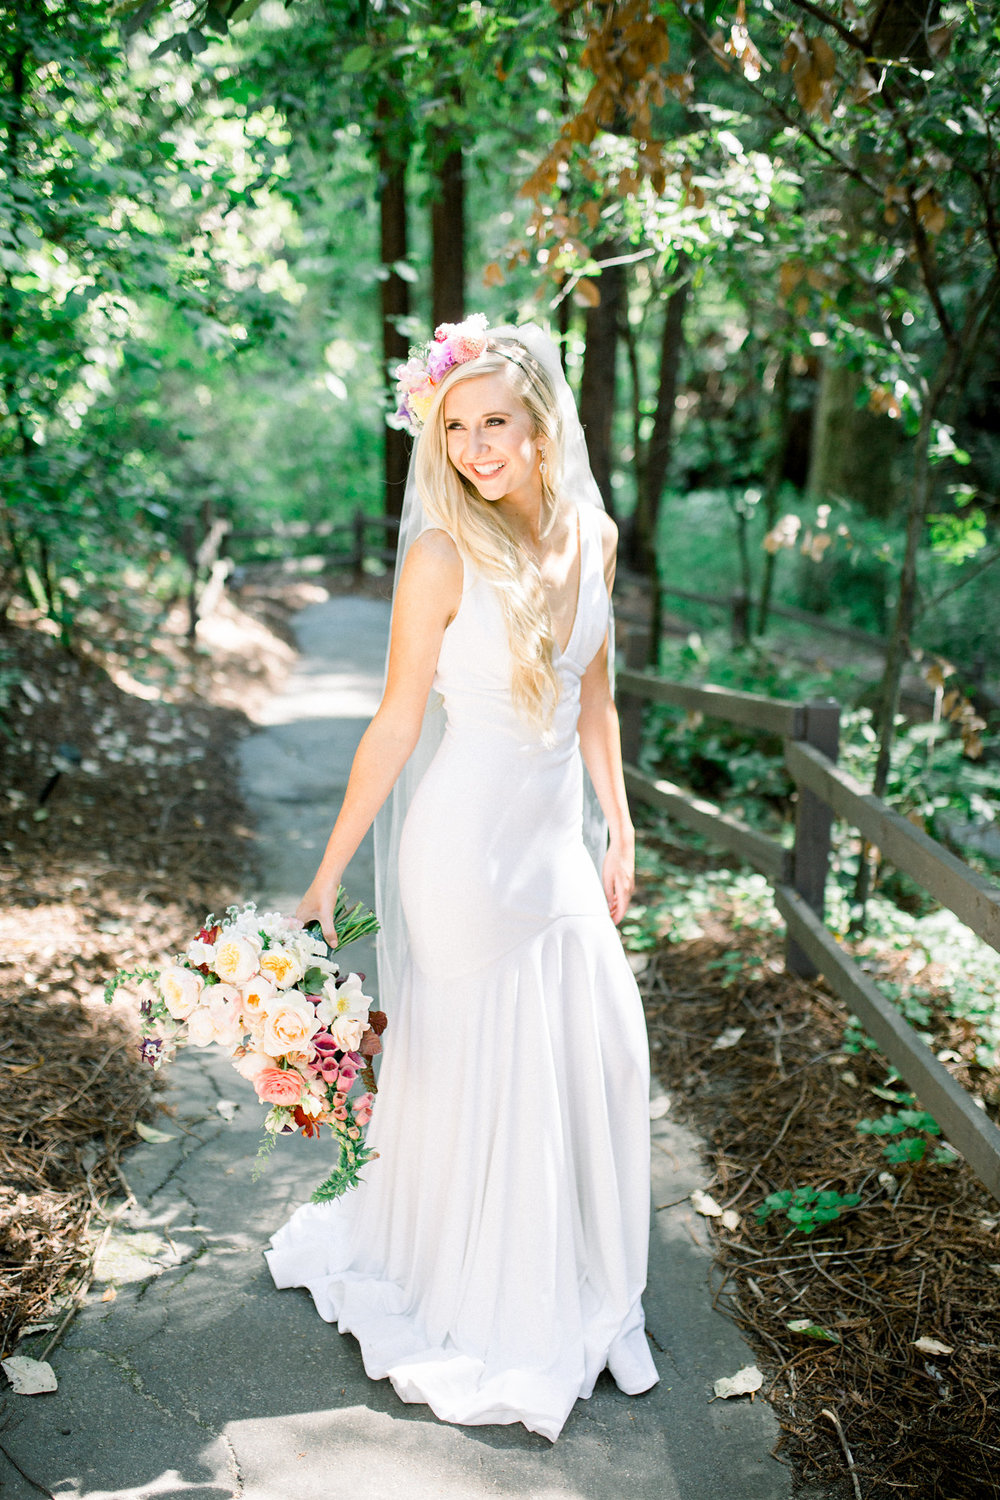 bride in floor length sleeveless deep v neckline wedding gown with veil and flowers in hair kim baker beauty san jose california makeup artist